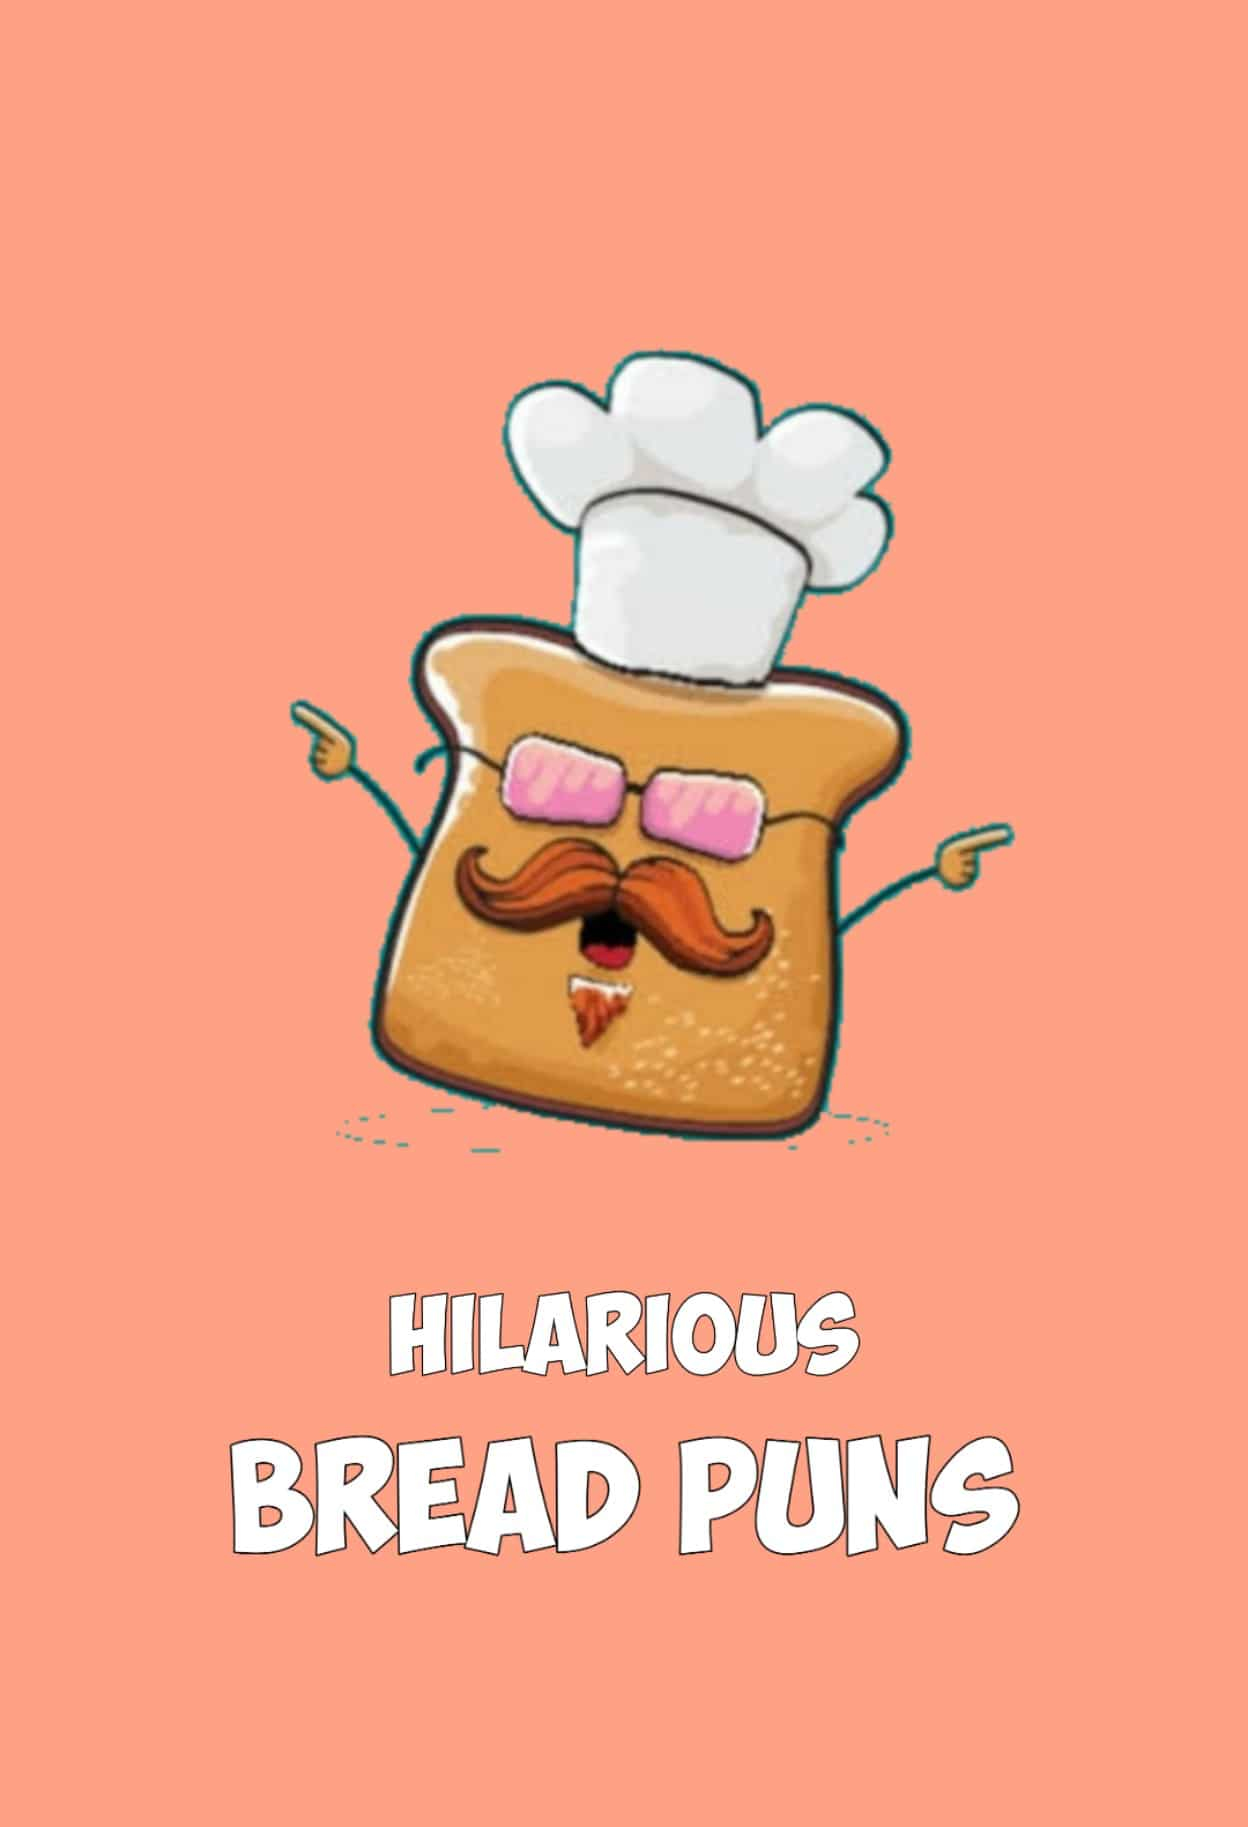 60 Bread Puns That Are Soft. Delicious. Nutritious And Funny